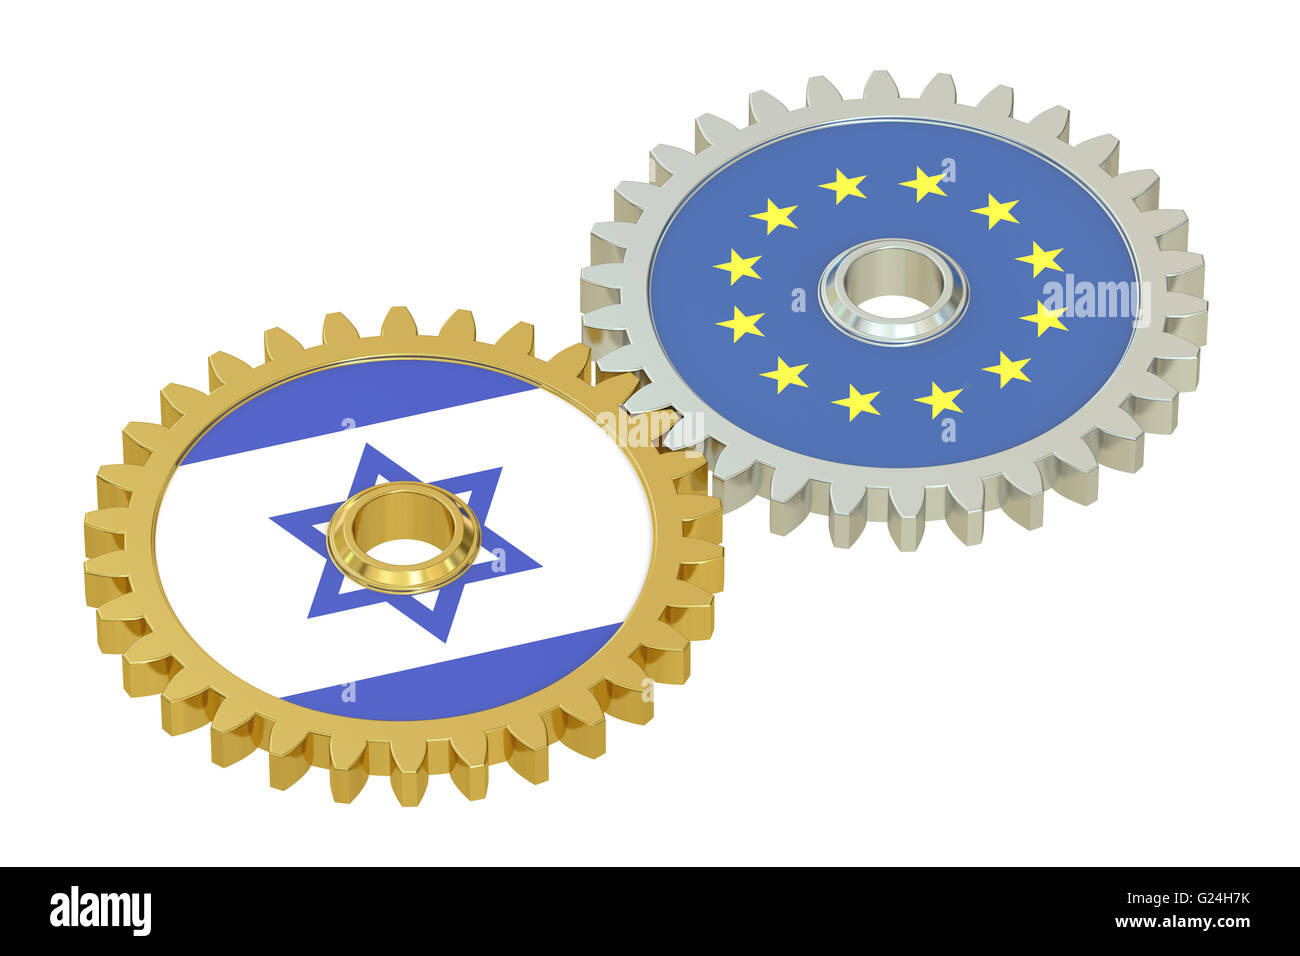 Israel and EU flags on a gears, 3D rendering isolated on white background - Stock Image